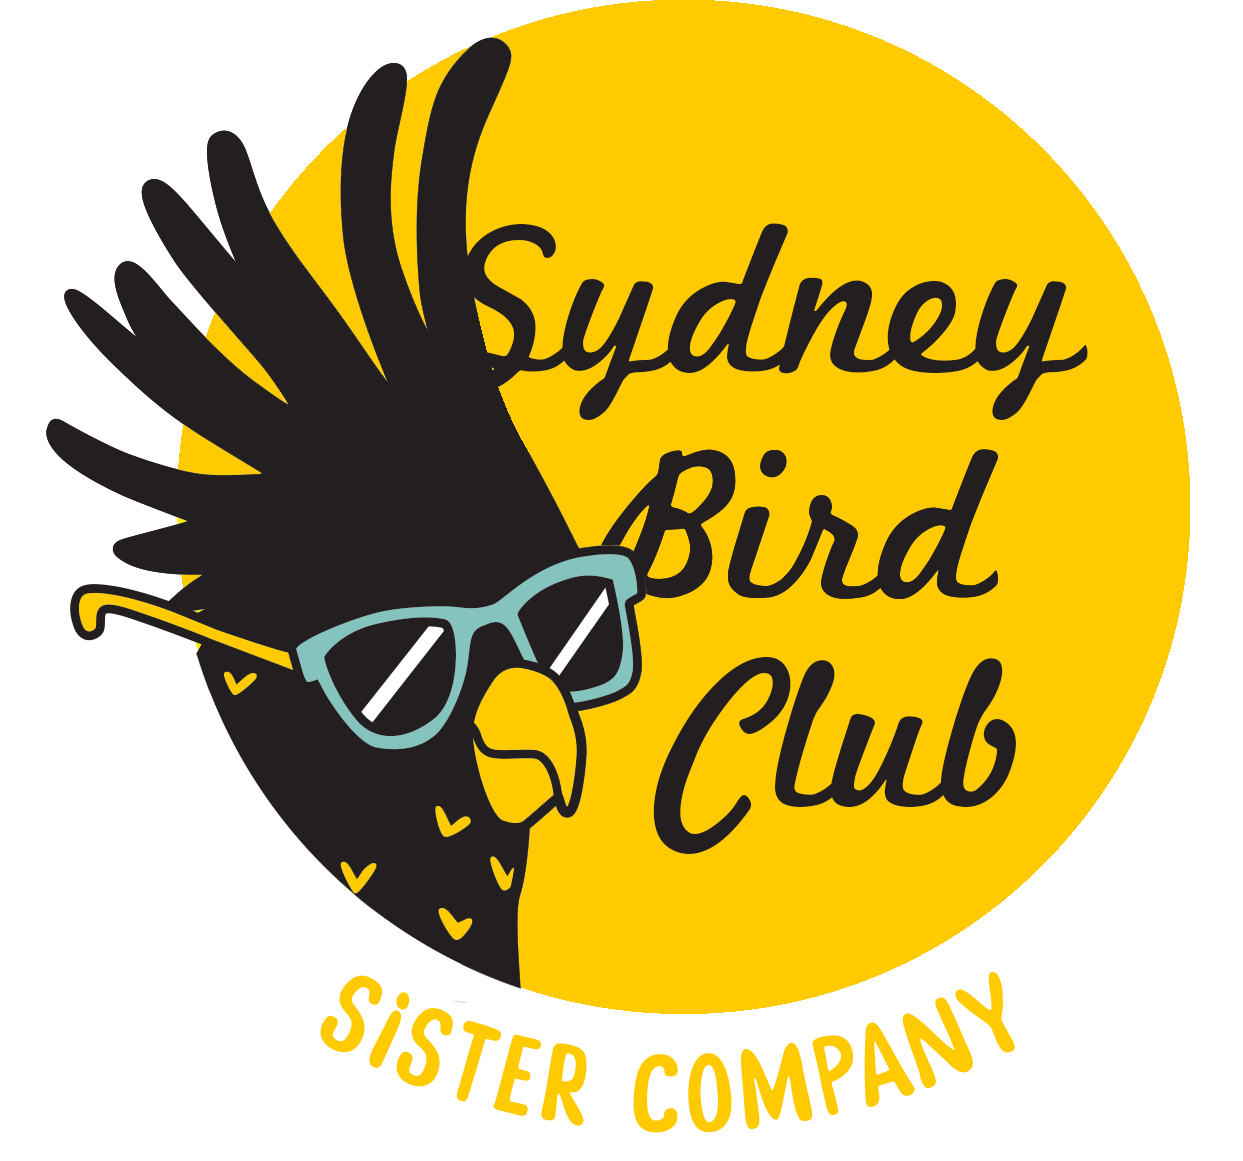 Visit Sydney Bird Club - Copyright Outer Island